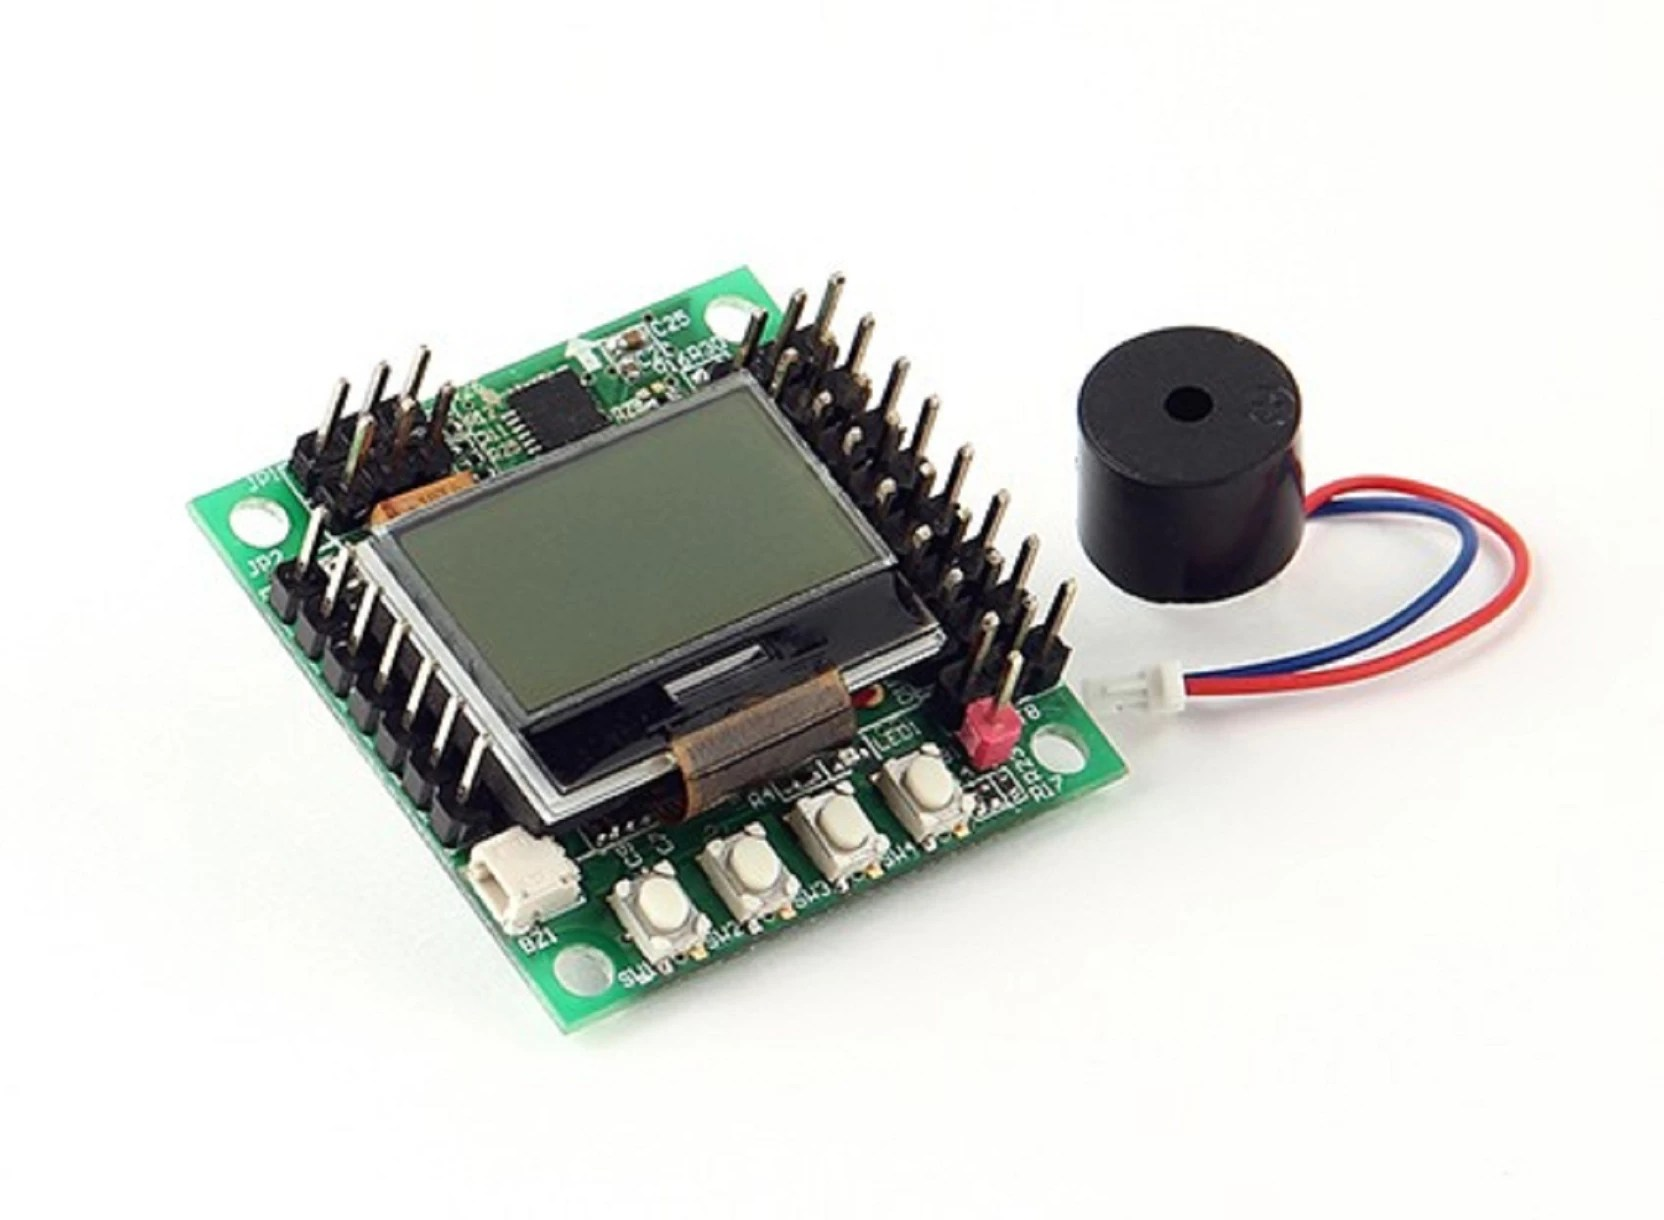 hight resolution of sunrobotics kk mini multi rotor lcd flight control board green